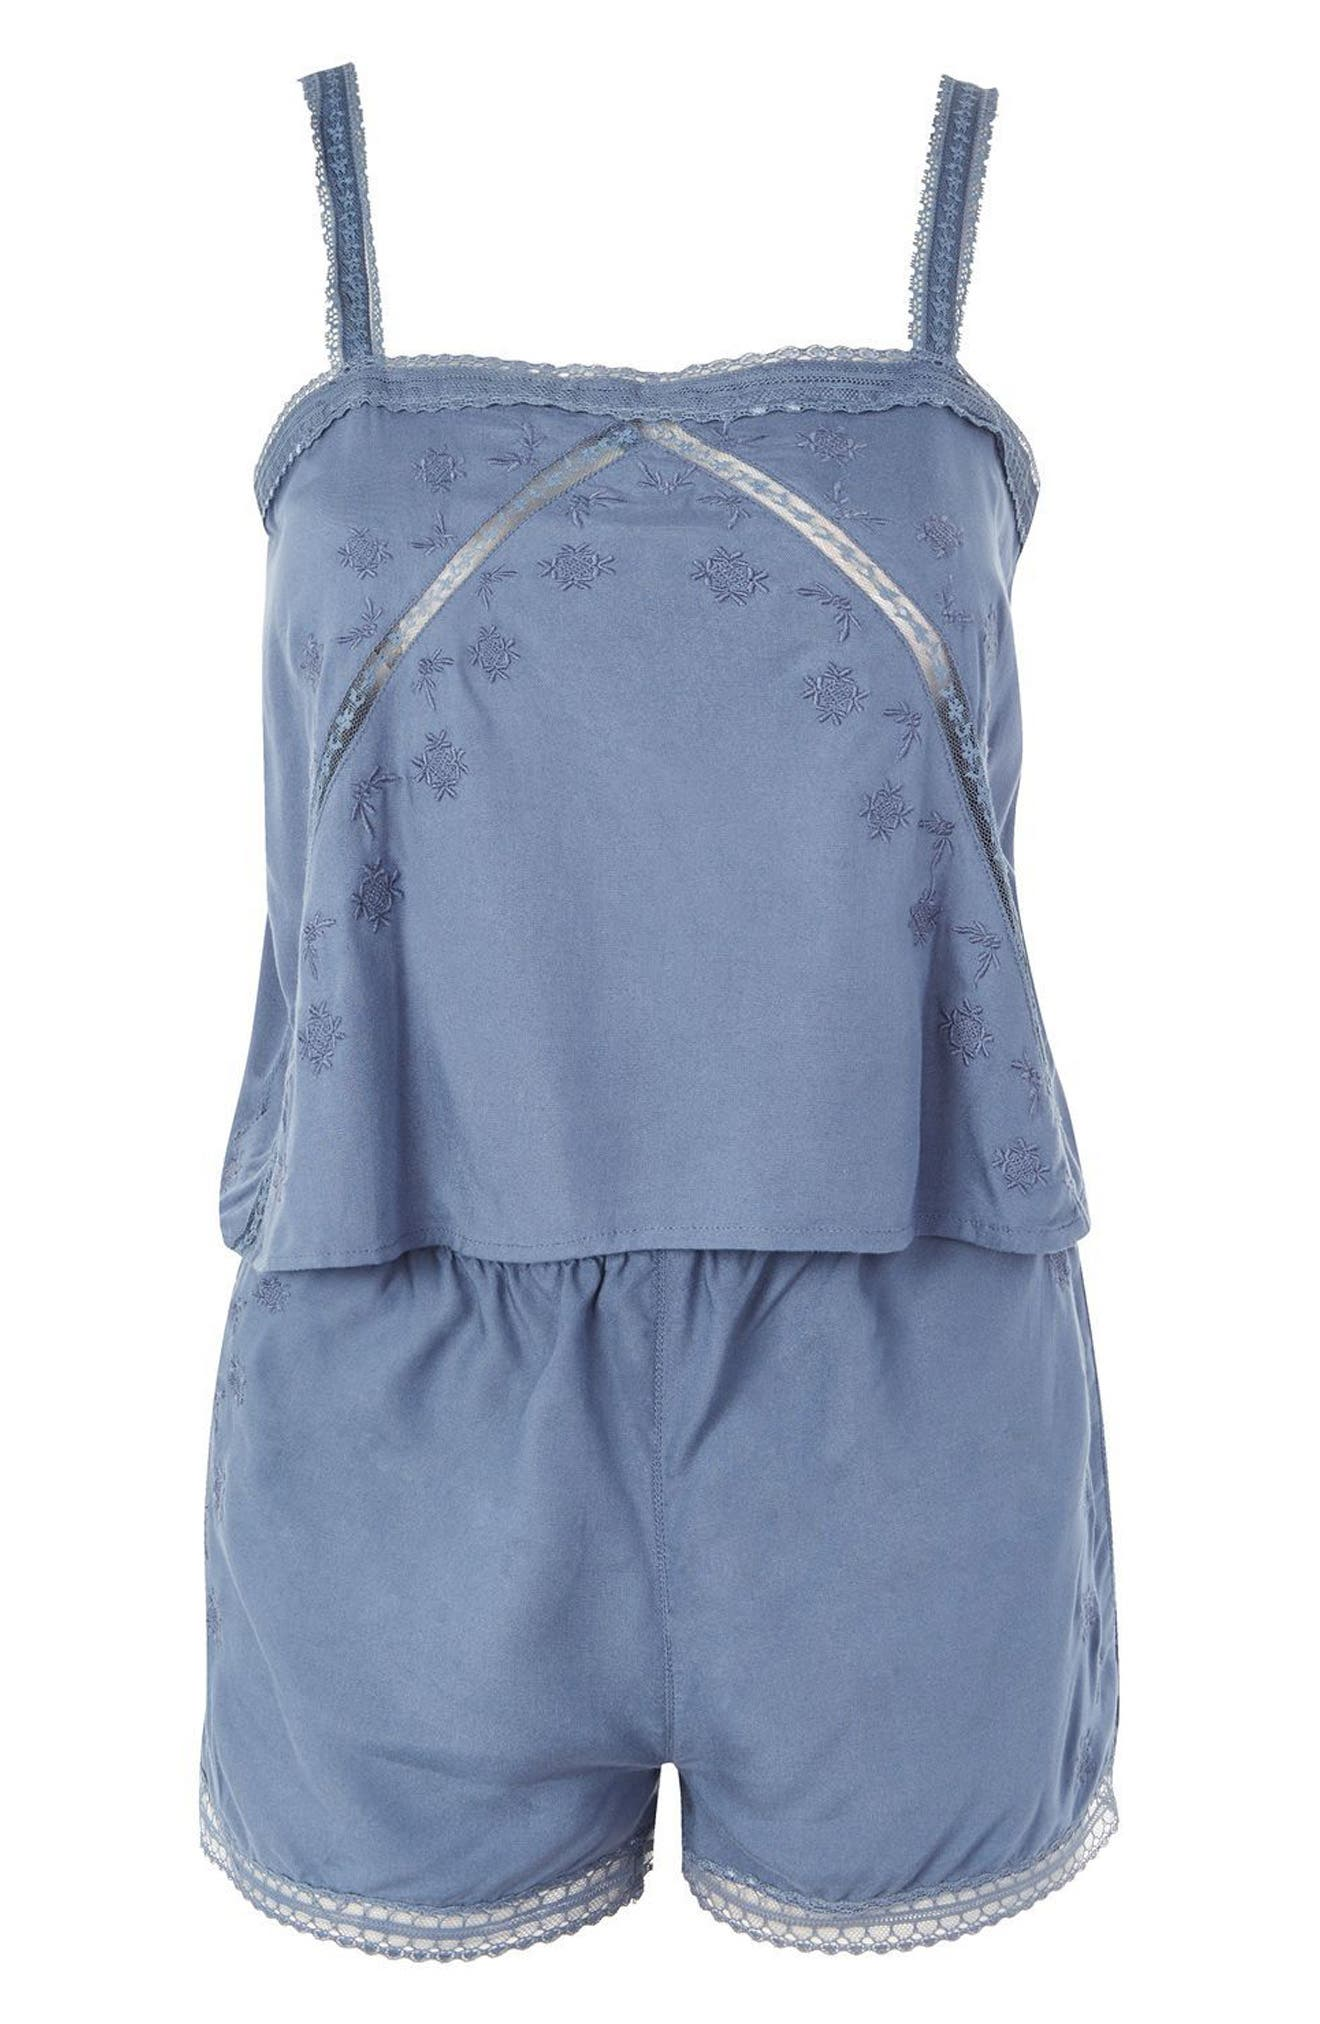 Slate Broderie Camisole & Sleep Shorts,                             Alternate thumbnail 3, color,                             020